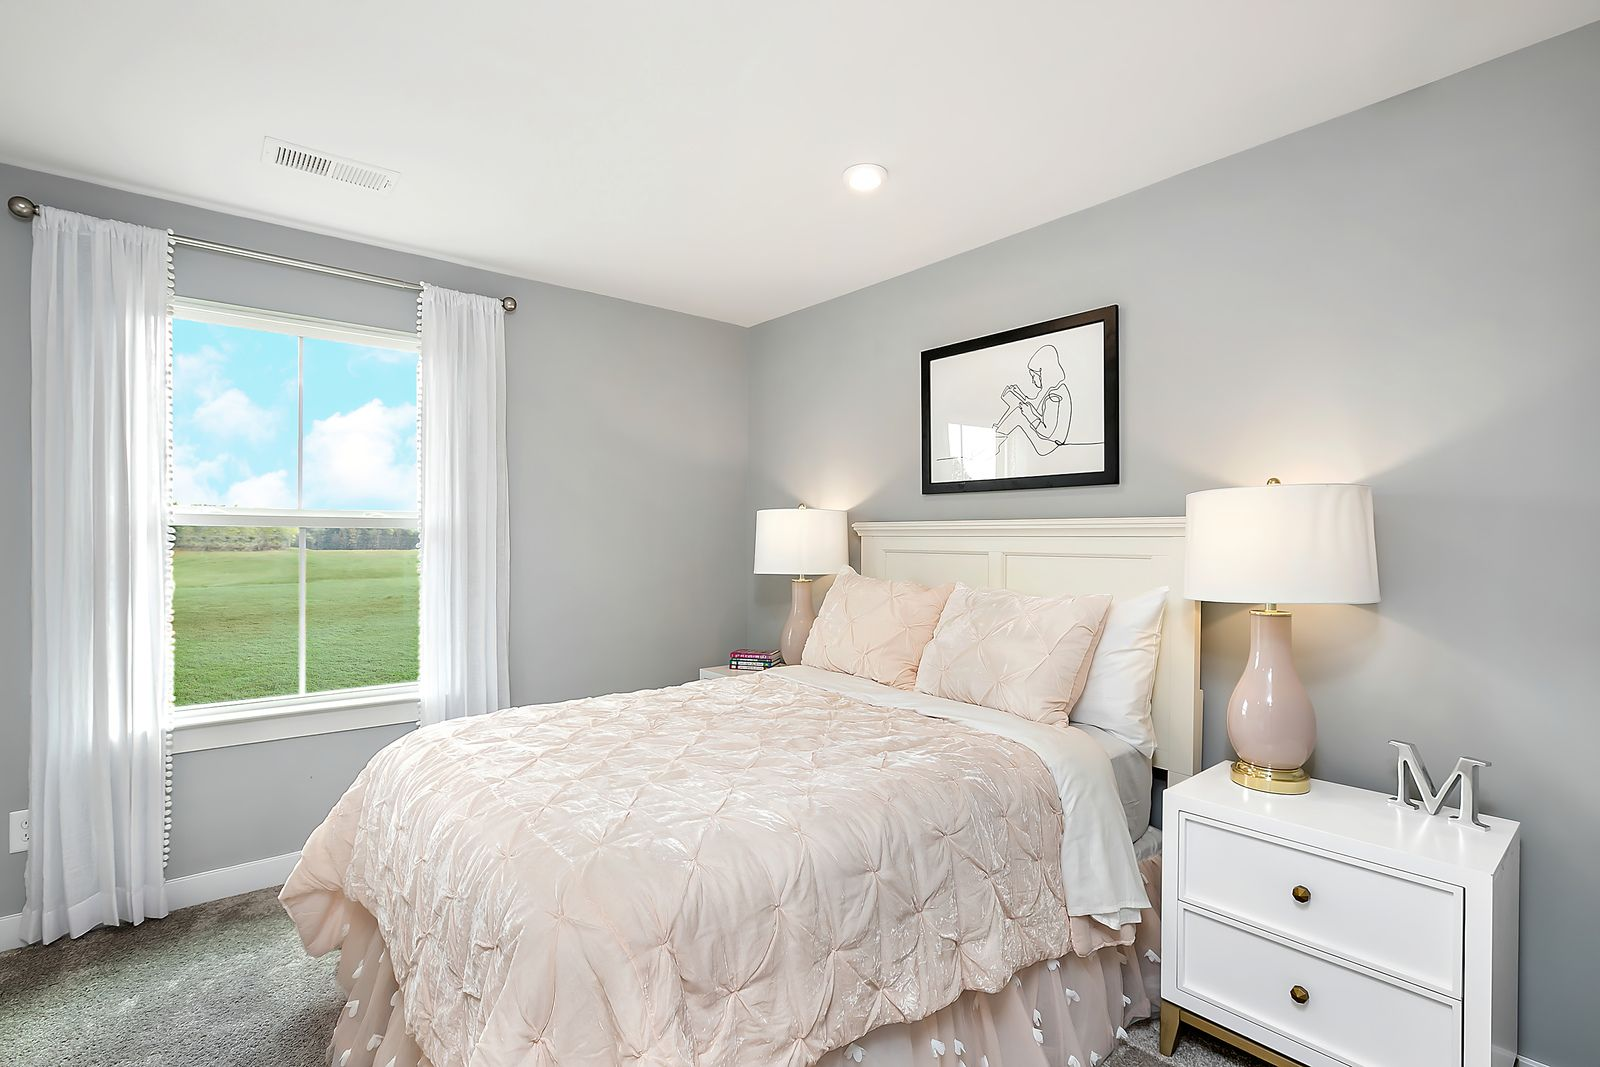 Bedroom featured in the Bramante Ranch By Ryan Homes in Cincinnati, OH